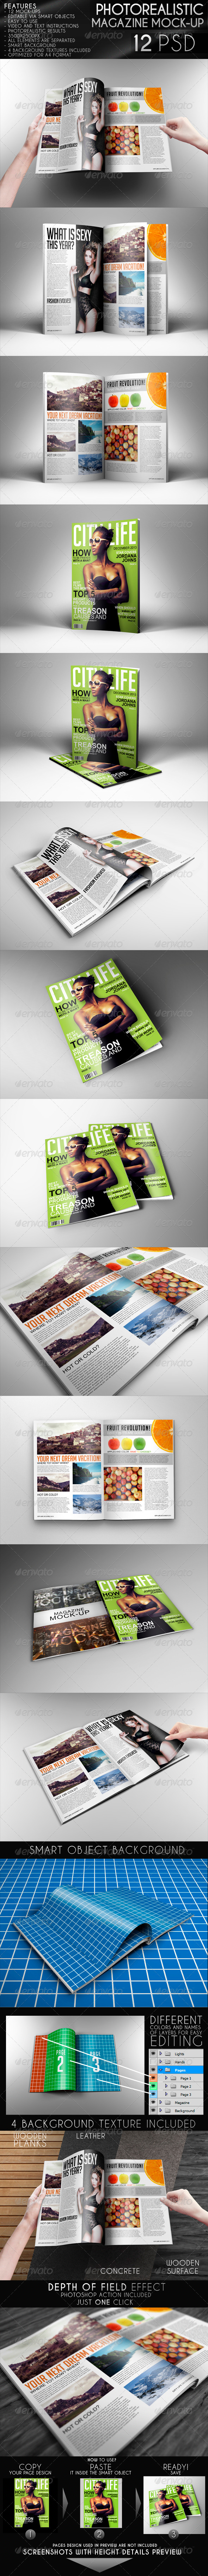 Photorealistic Magazine Mock-Up - Magazines Print